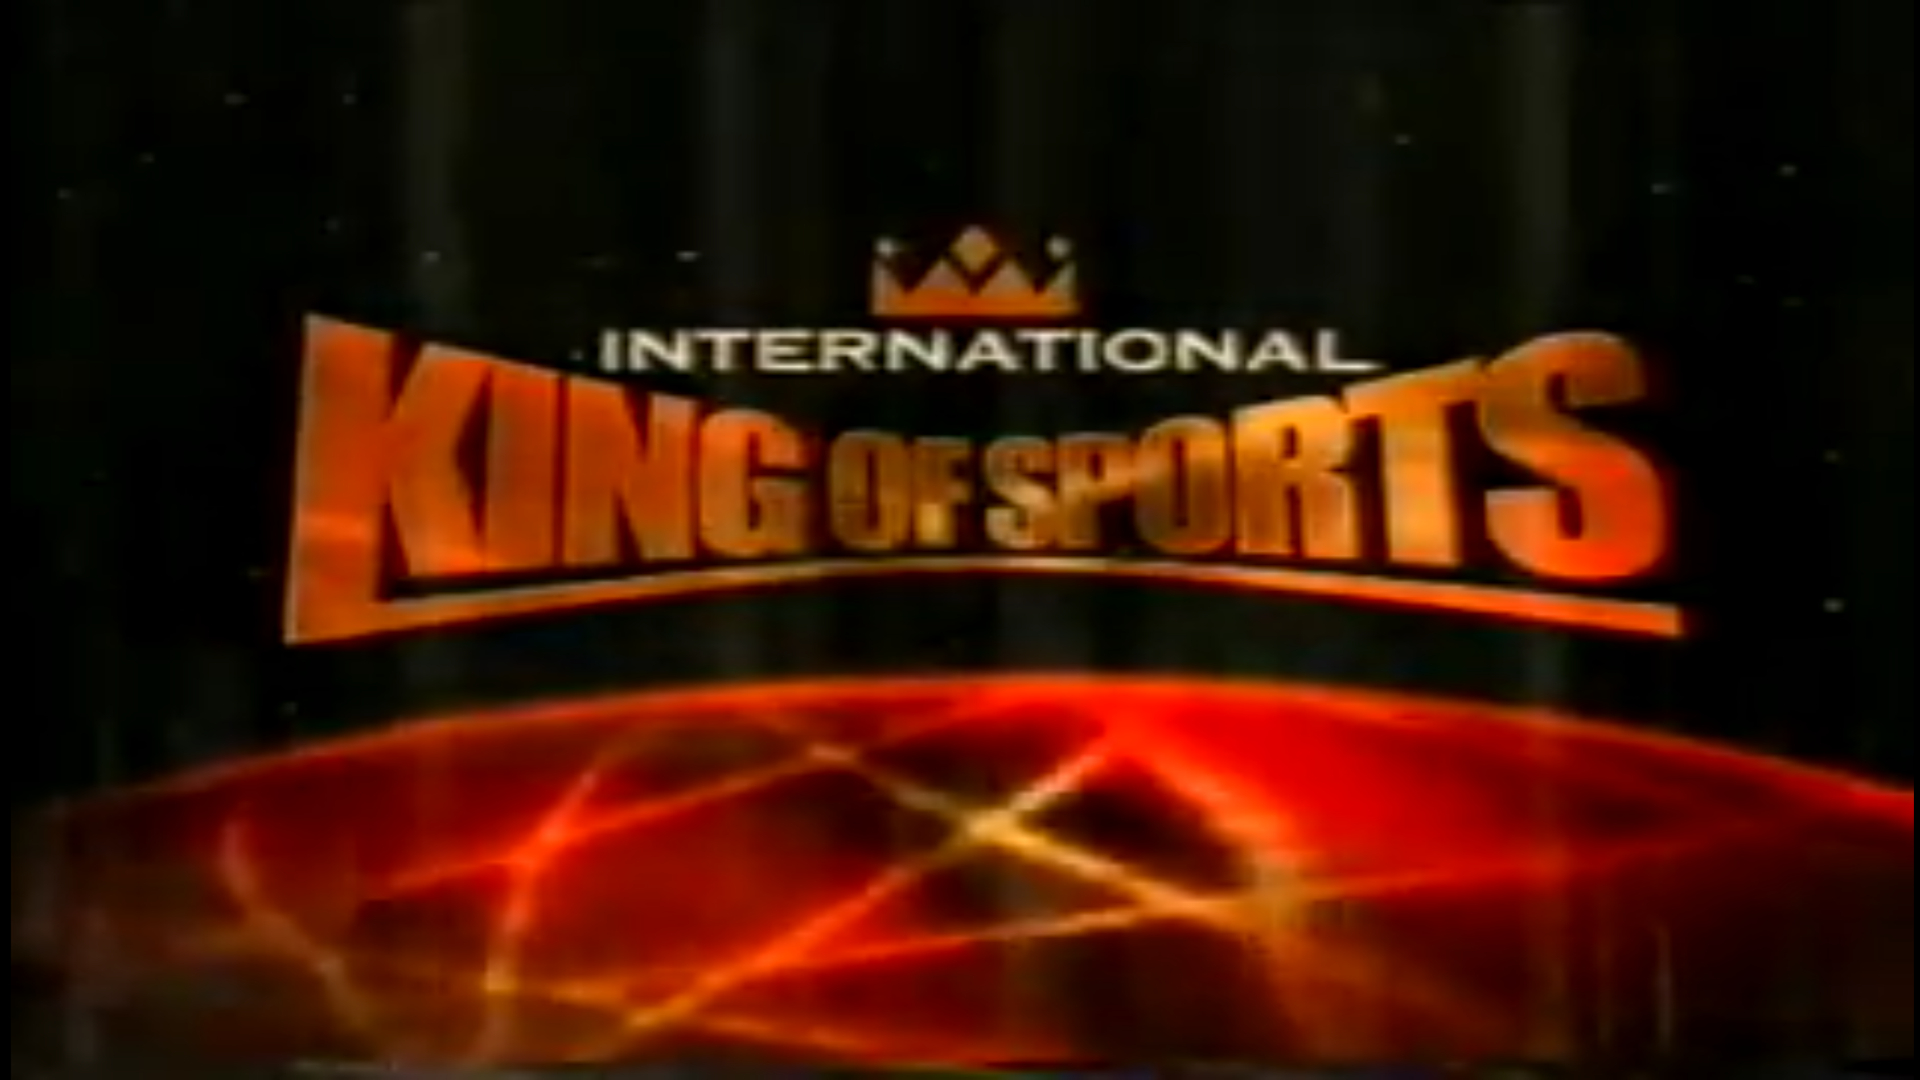 International King of Sports